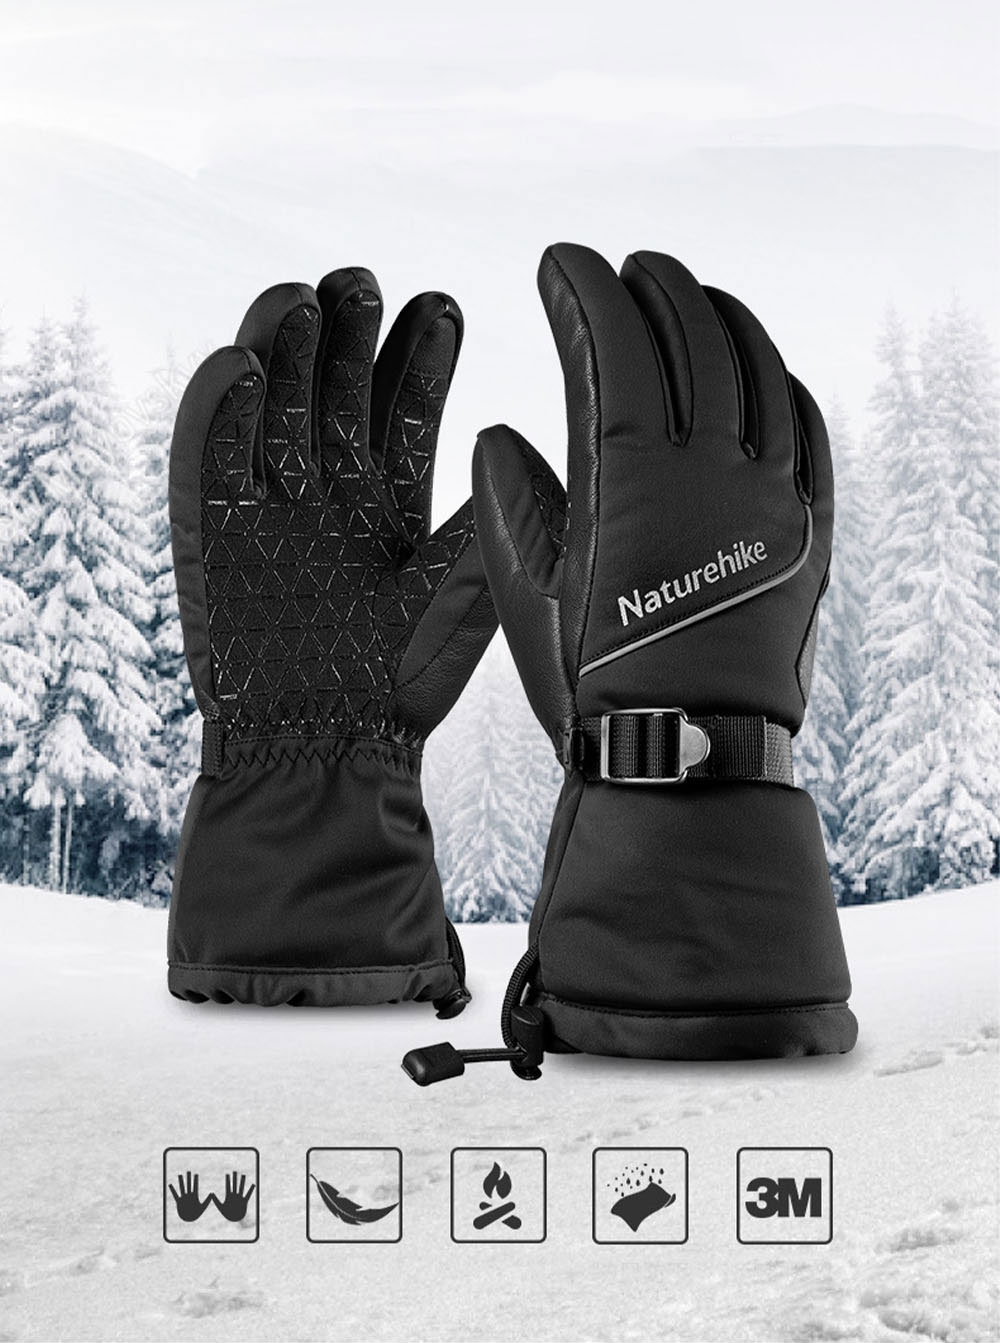 Naturehike Wind-proof Water-proof Velvet Thickening Skiing Gloves for Outdoor  Warm Insulation Winter Thermal Hand Protection Sport Gloves 3